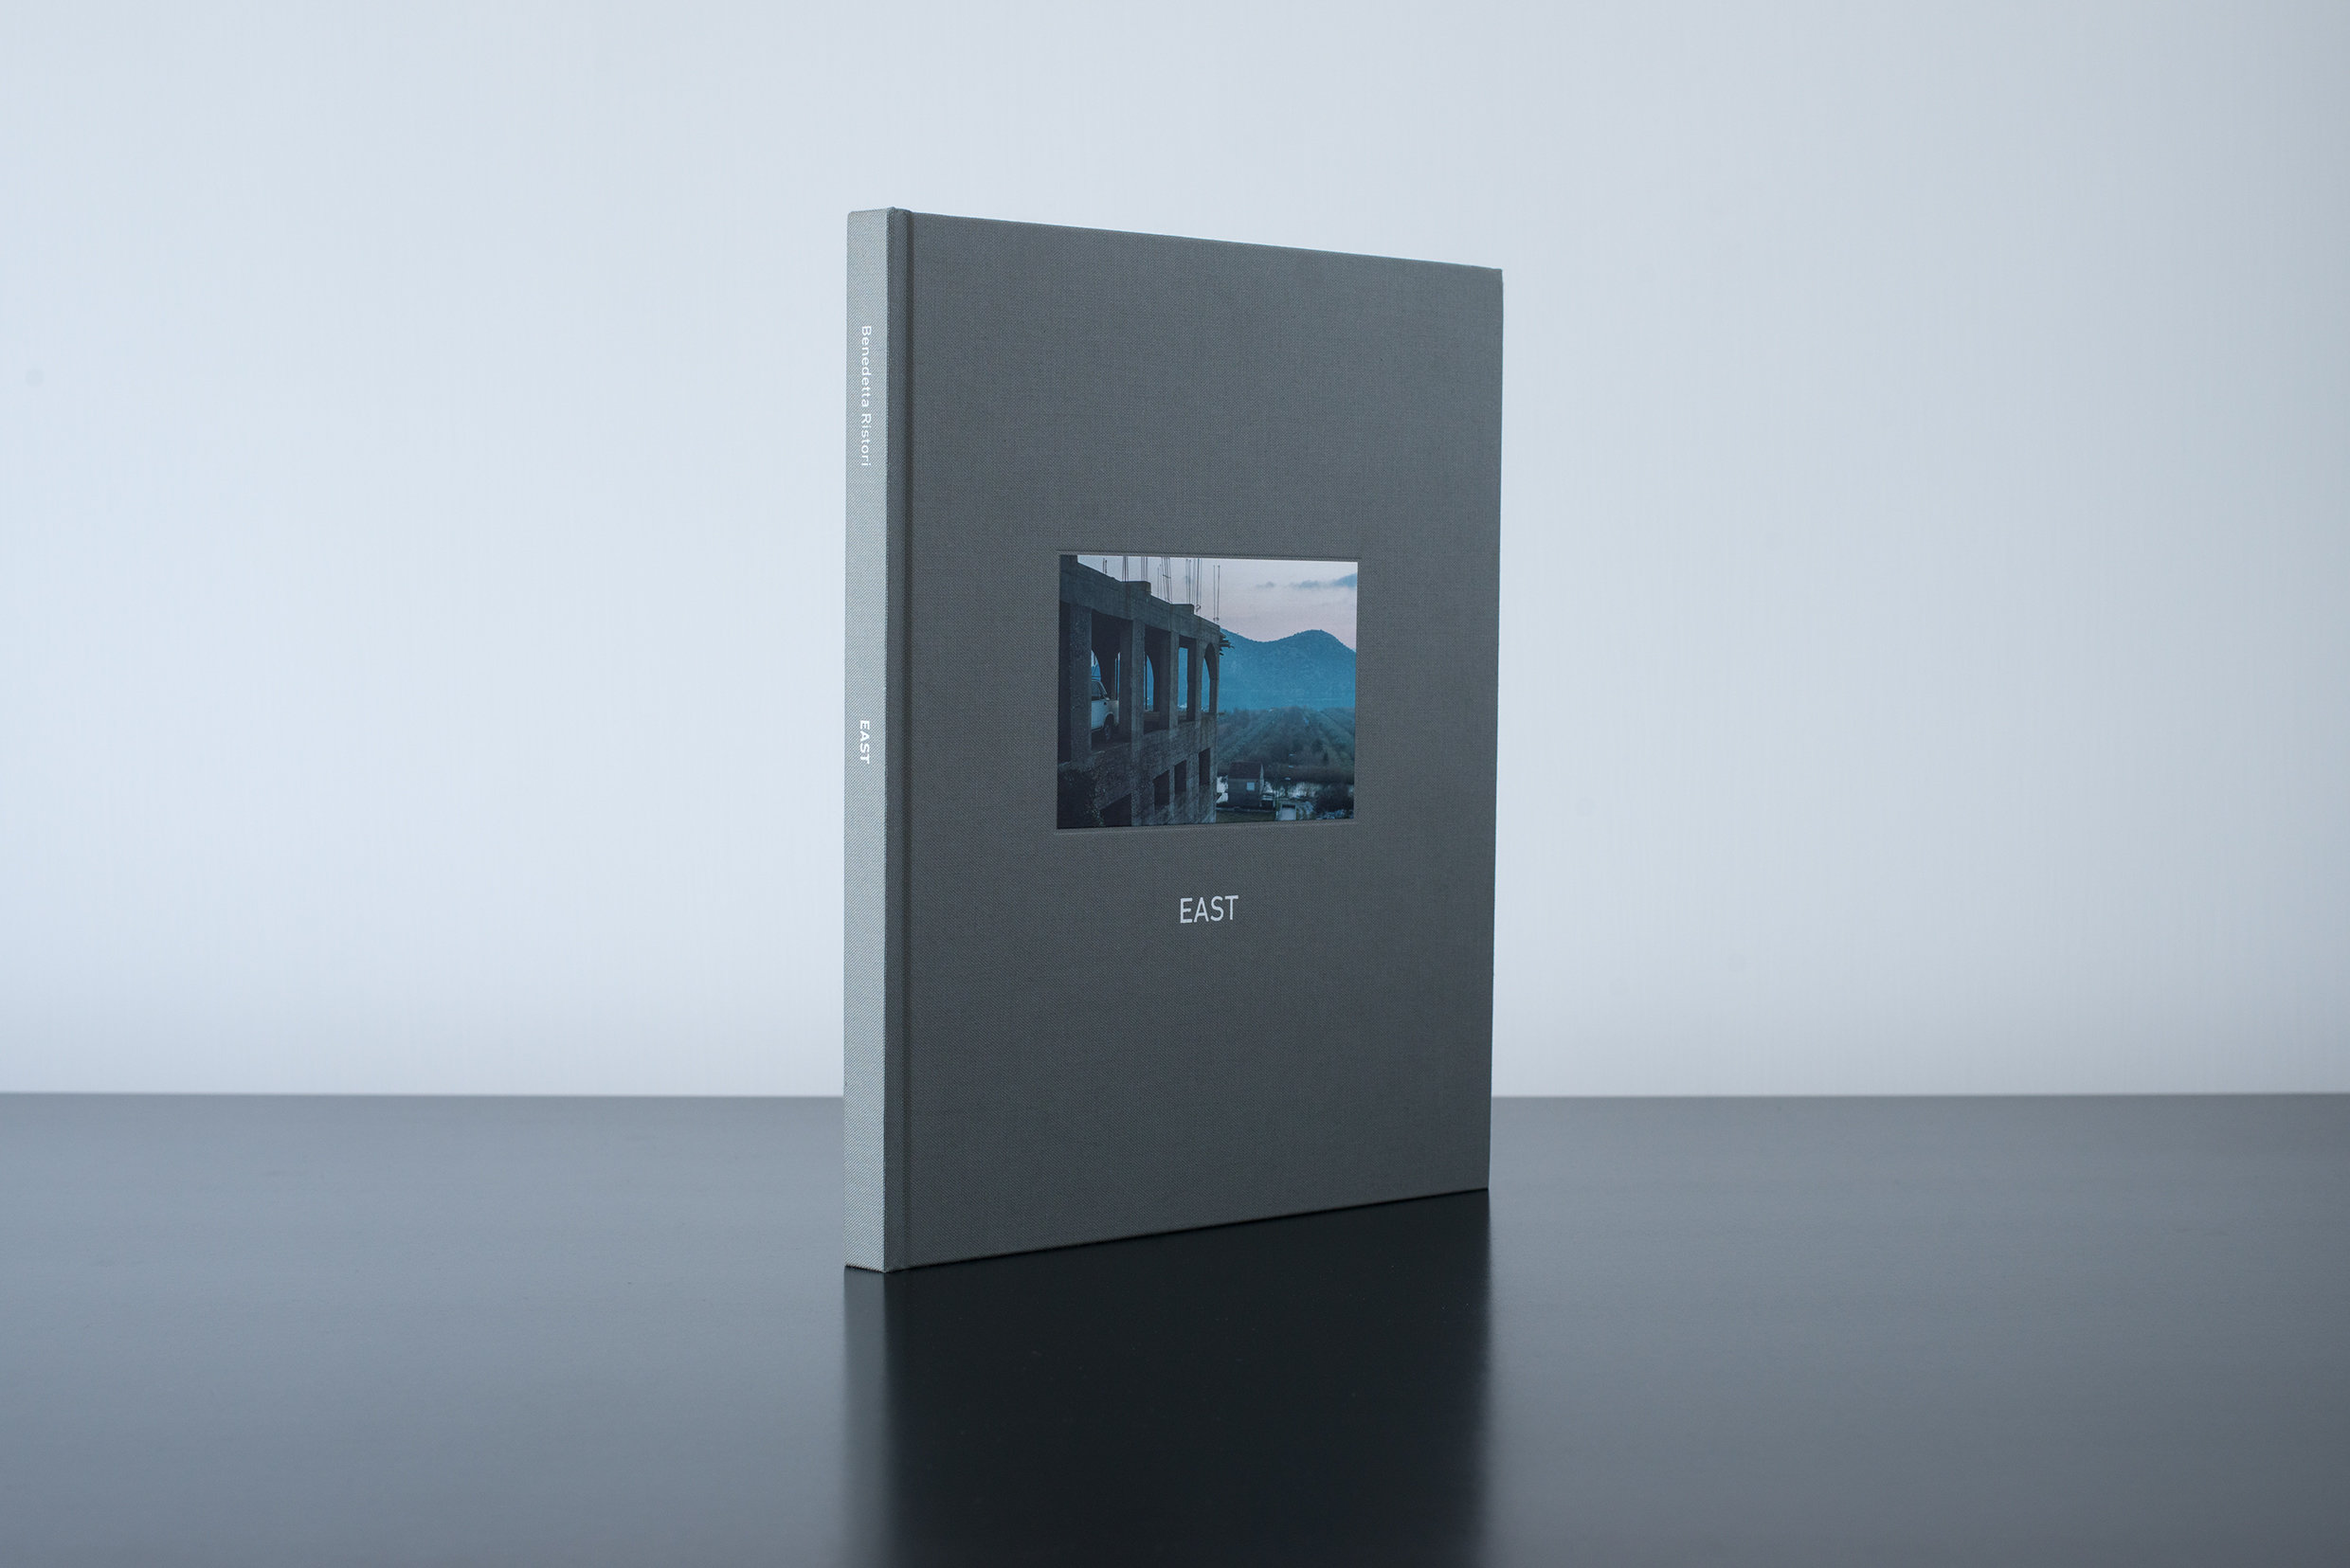 East - The book